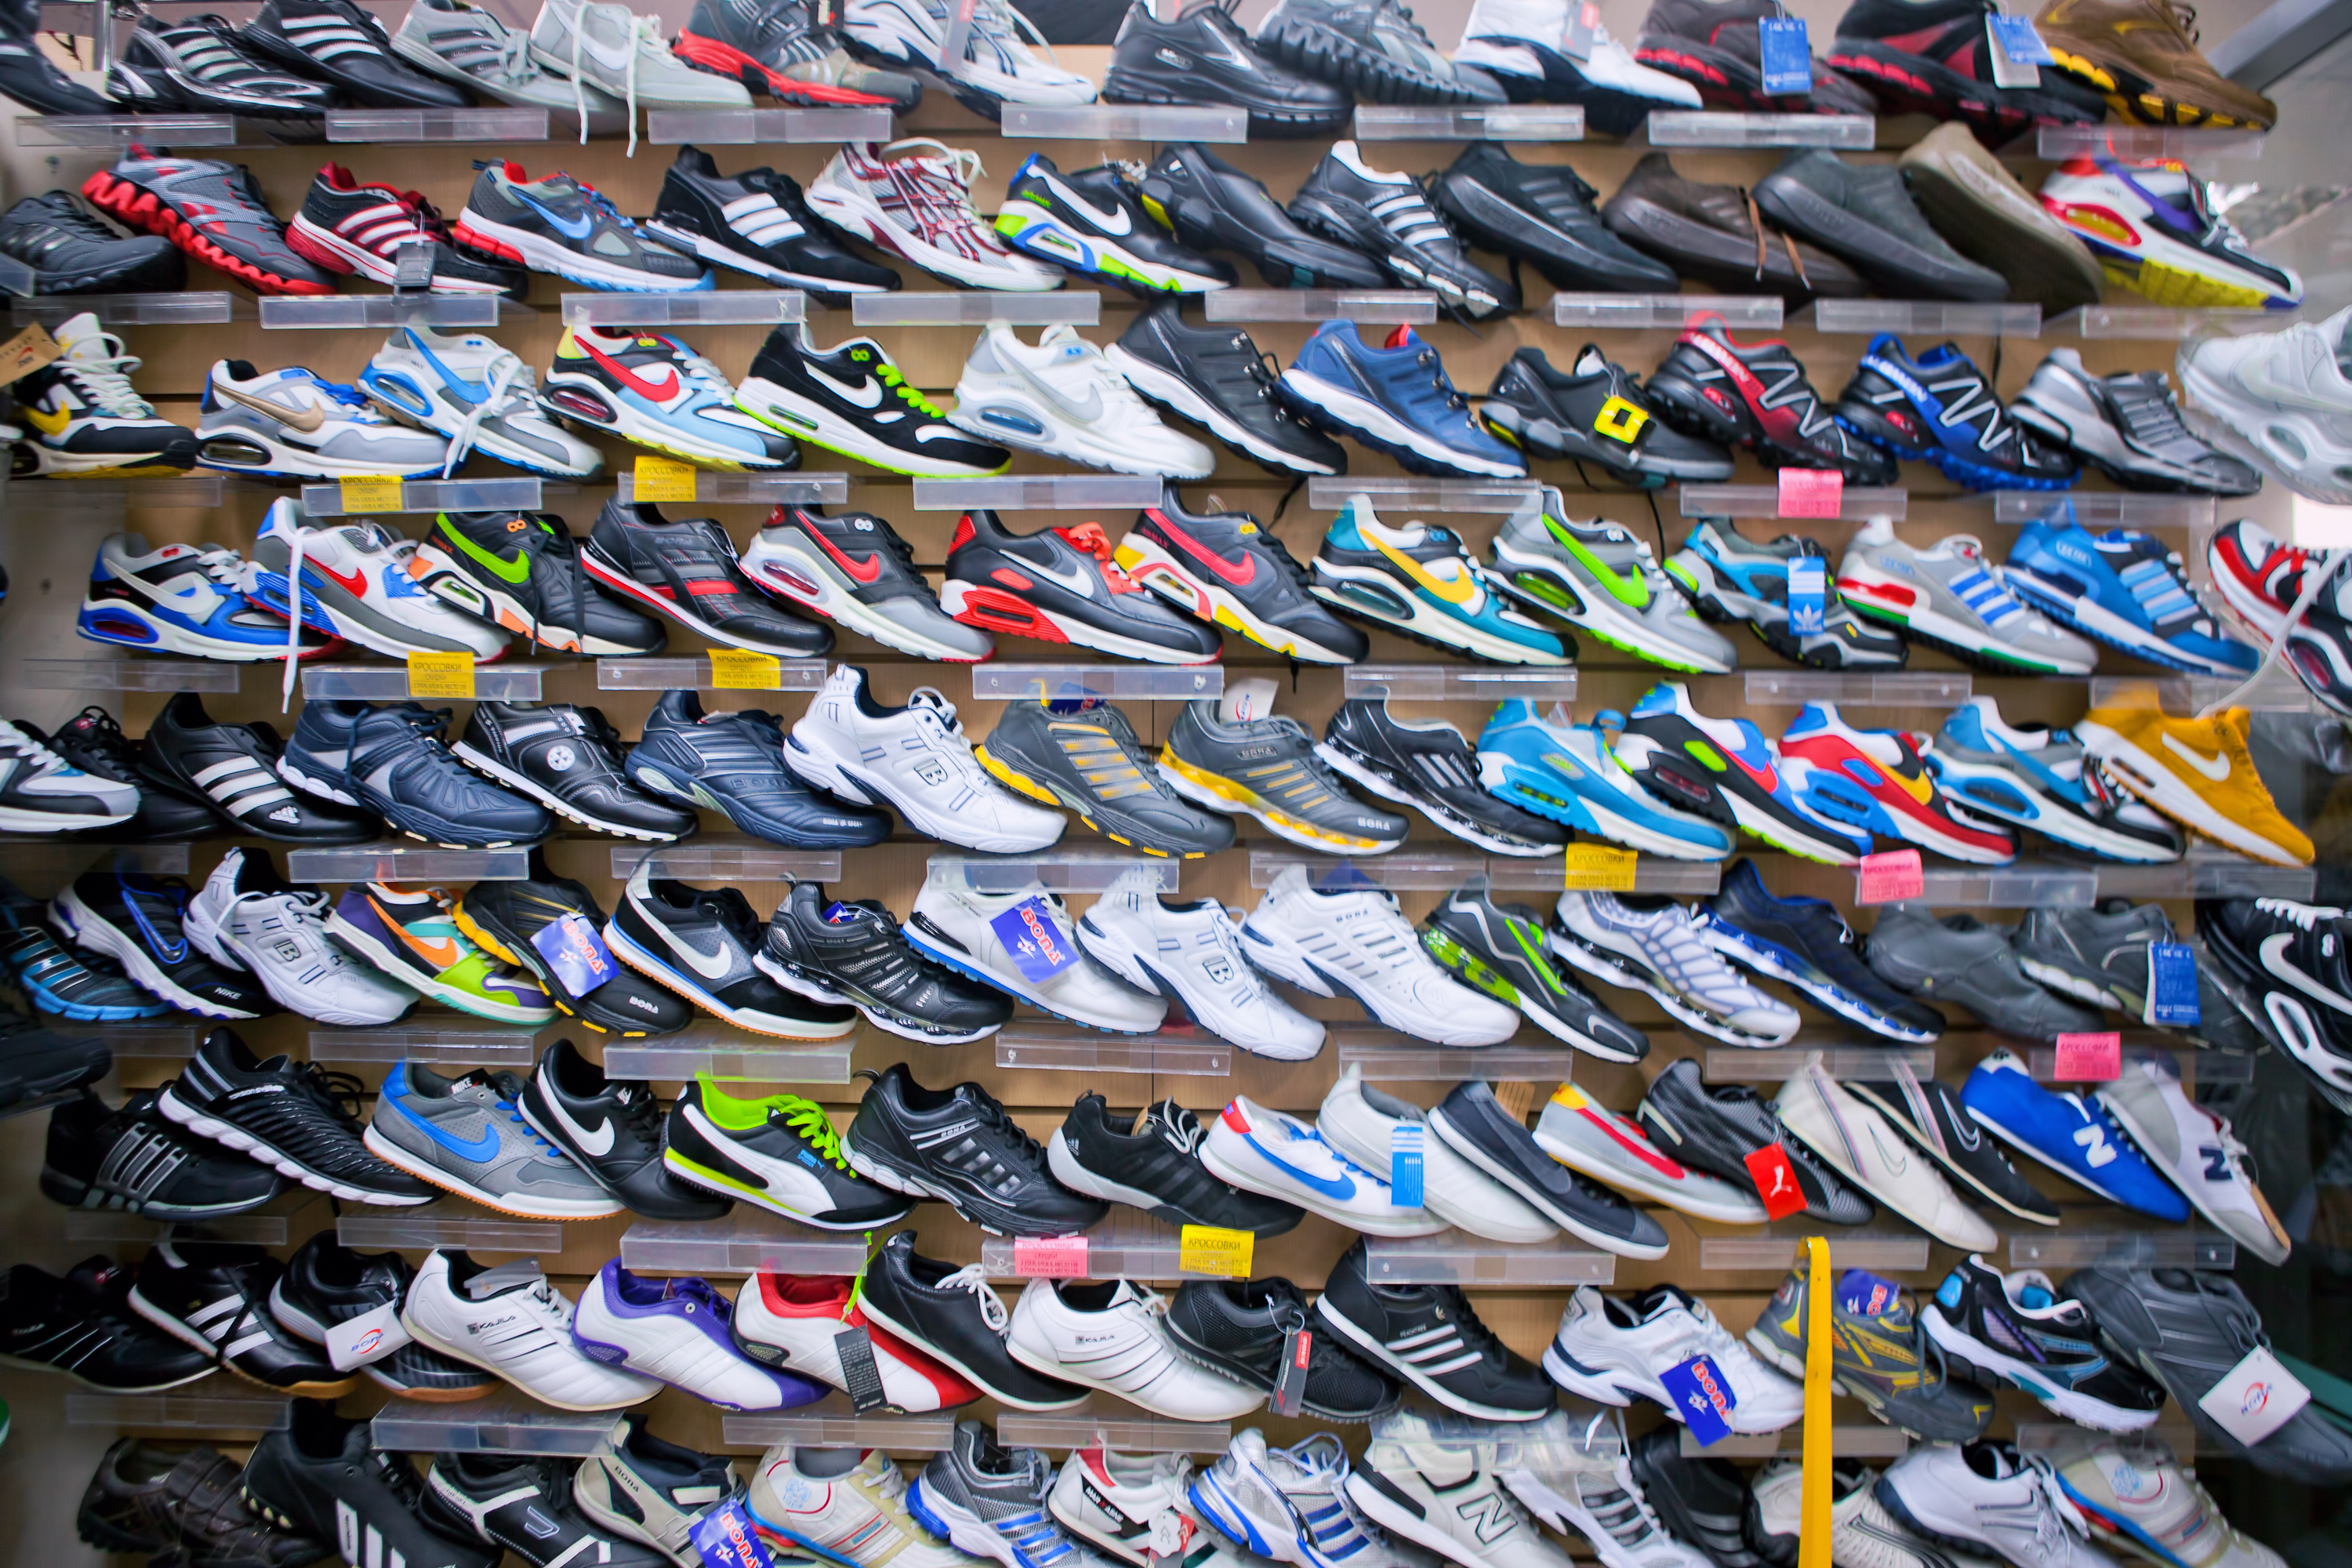 Shoes on sale - Store, Sale, Storage